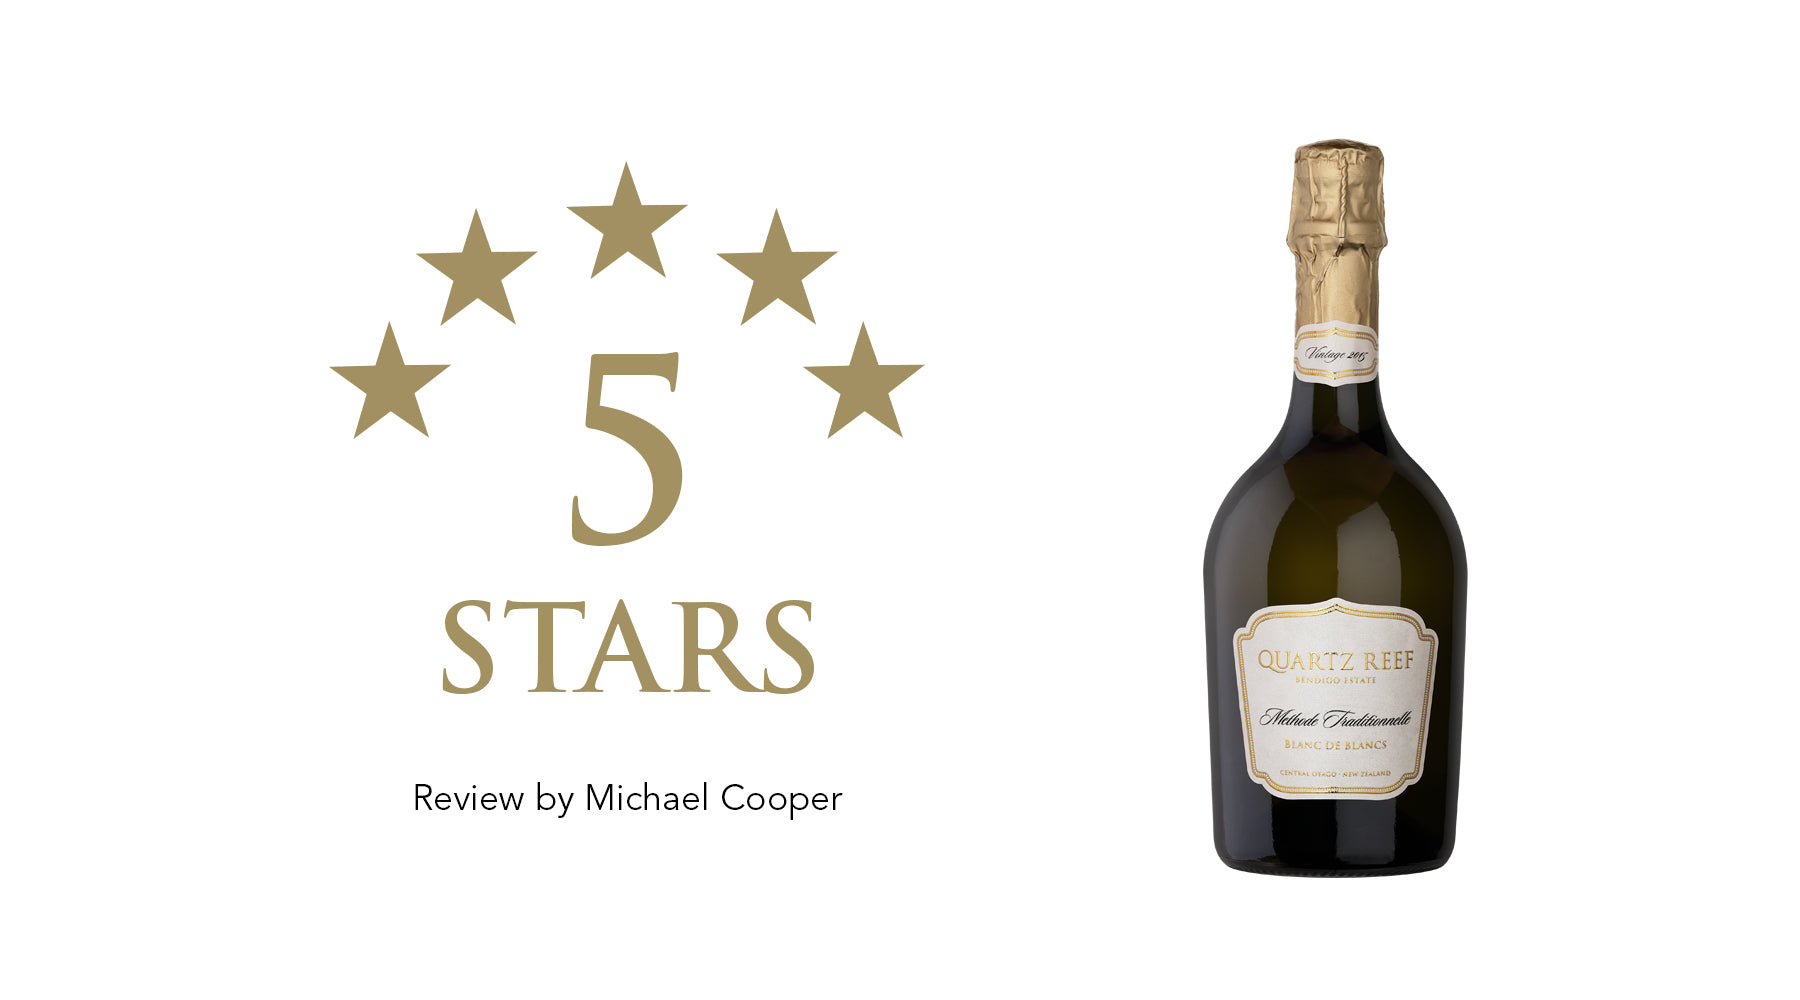 Methode Traditionnellé Vintage 2015 Blanc de Blanc - Awarded 5 Stars and Classic